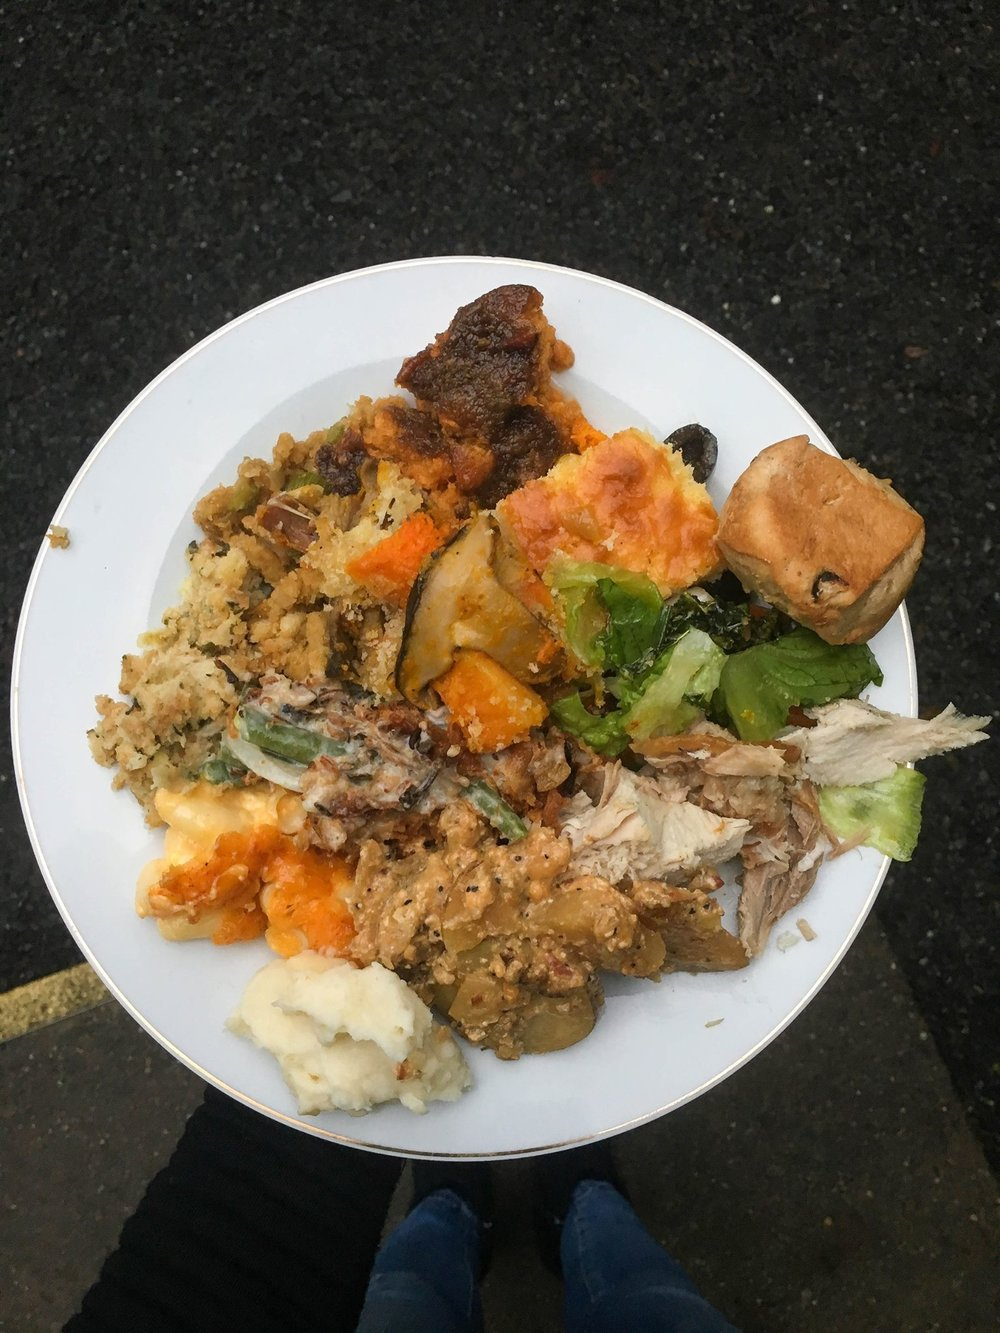 Last years Thanksgiving plate. Solid sides to turkey ratio here.